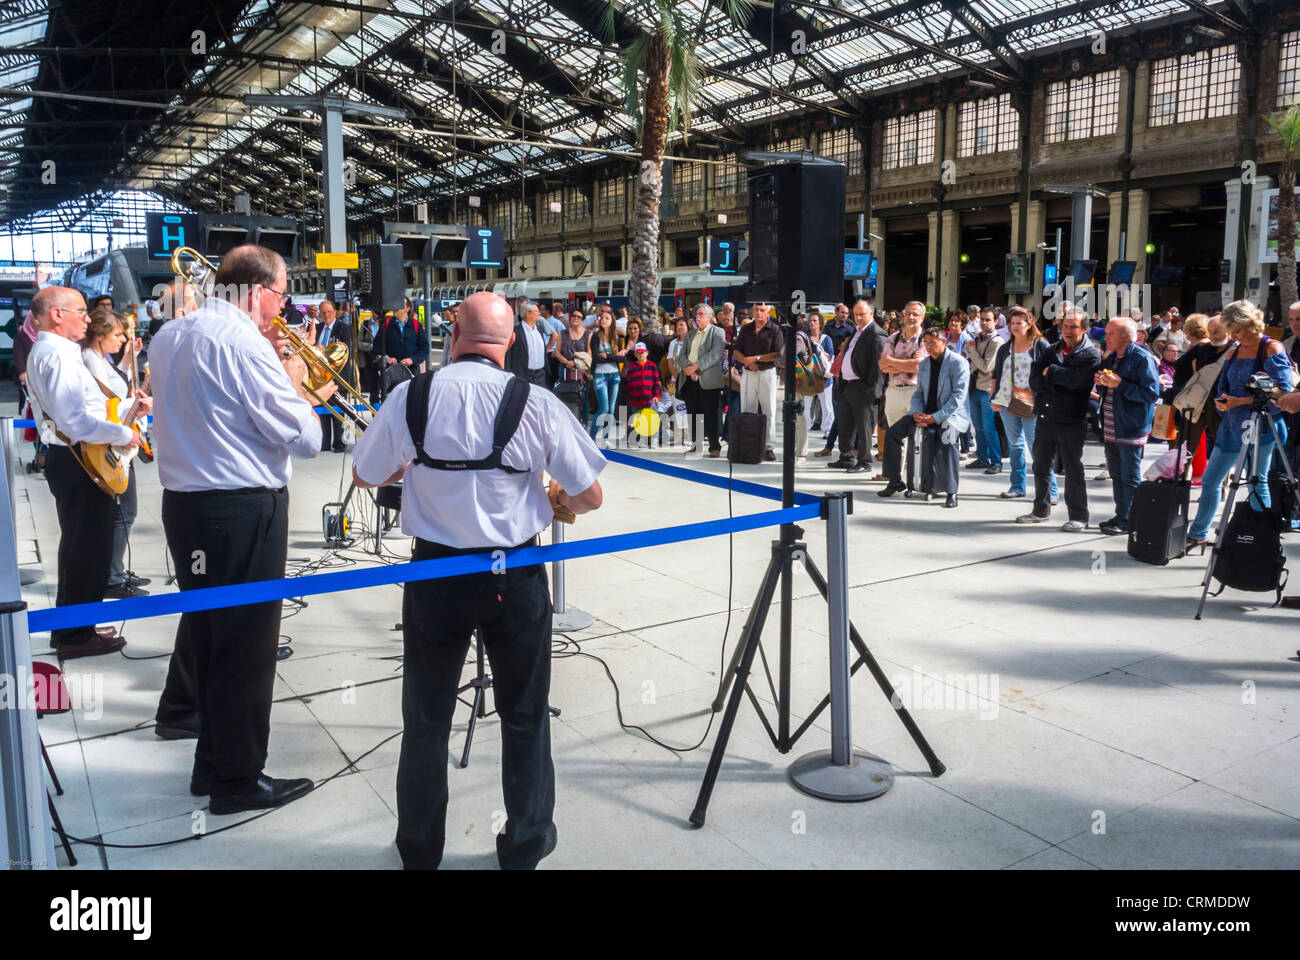 Paris, France, Grand public, à New Orleans Jazz Band, Orchestre d'effectuer dans la gare, Festival National Photo Stock